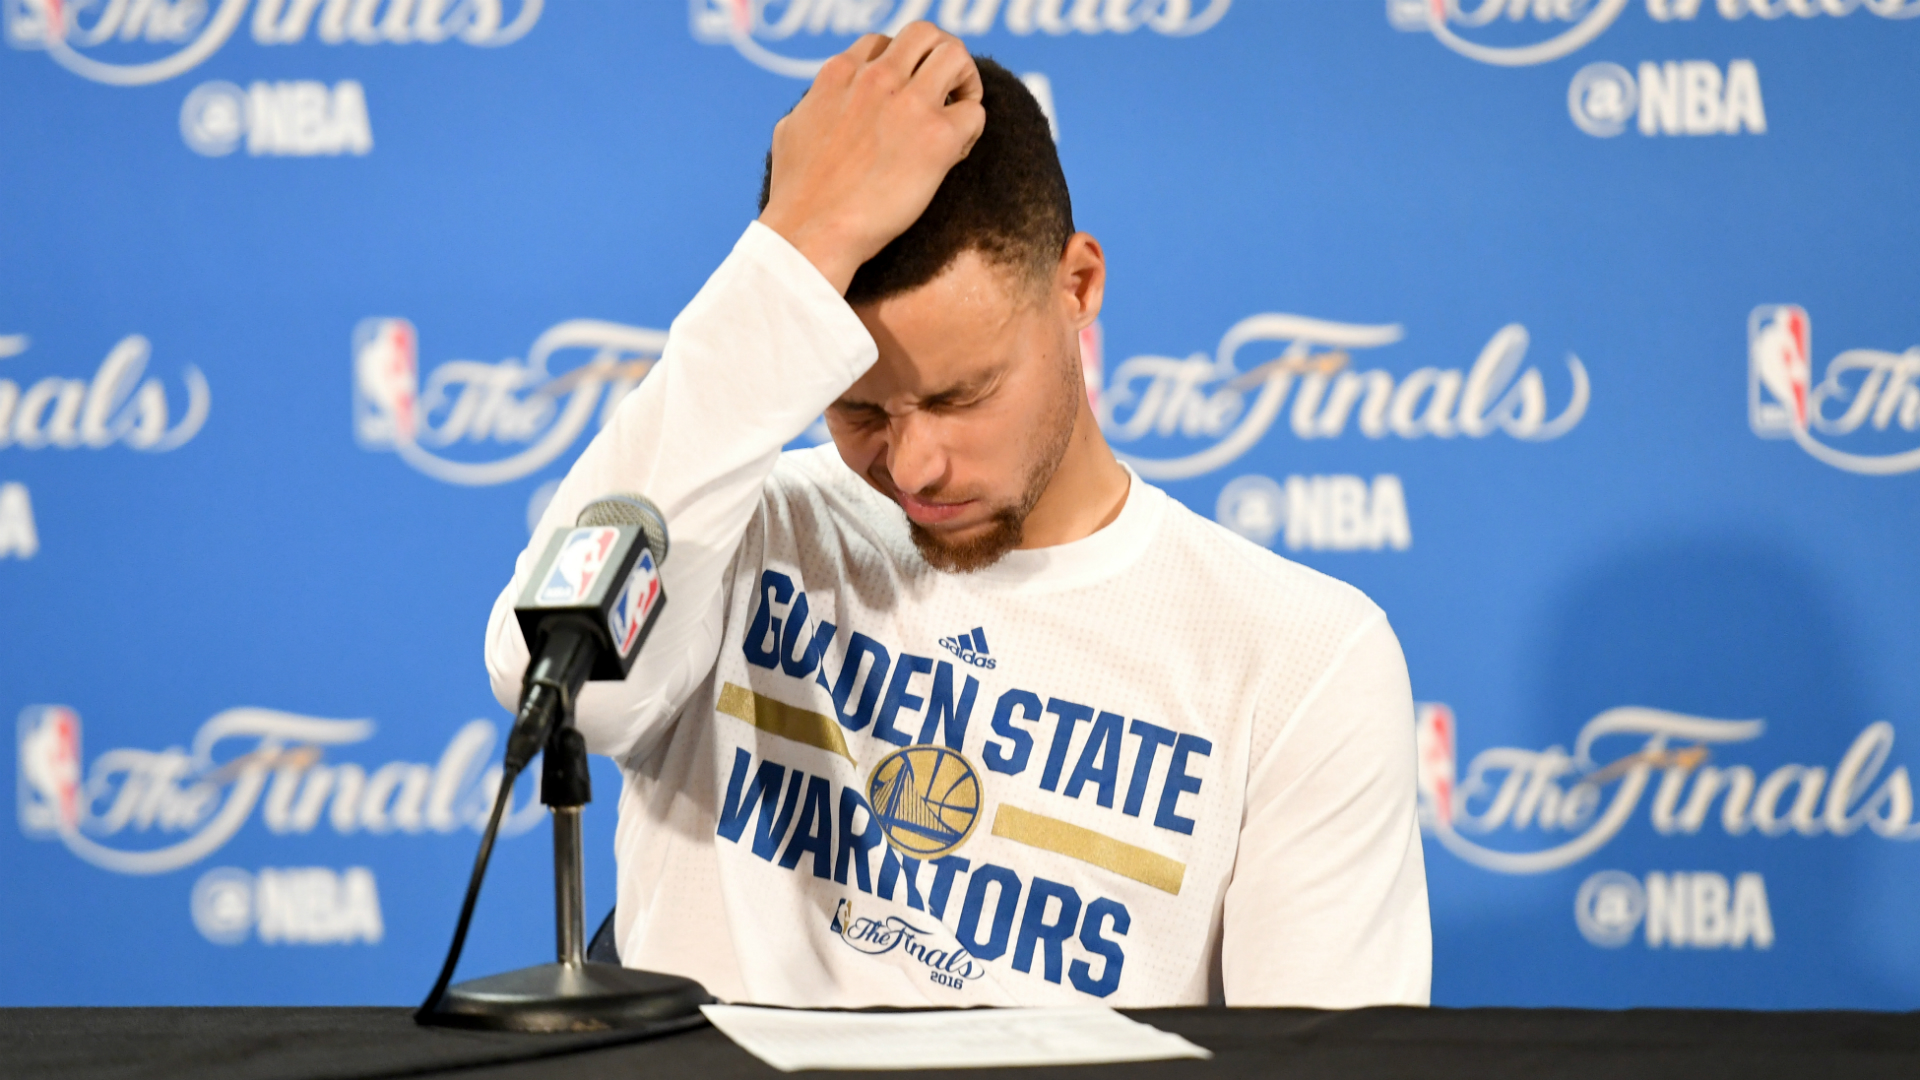 Stephen-curry-getty-ftr-062016_170jhrzbimg9017s7ctc2voldr